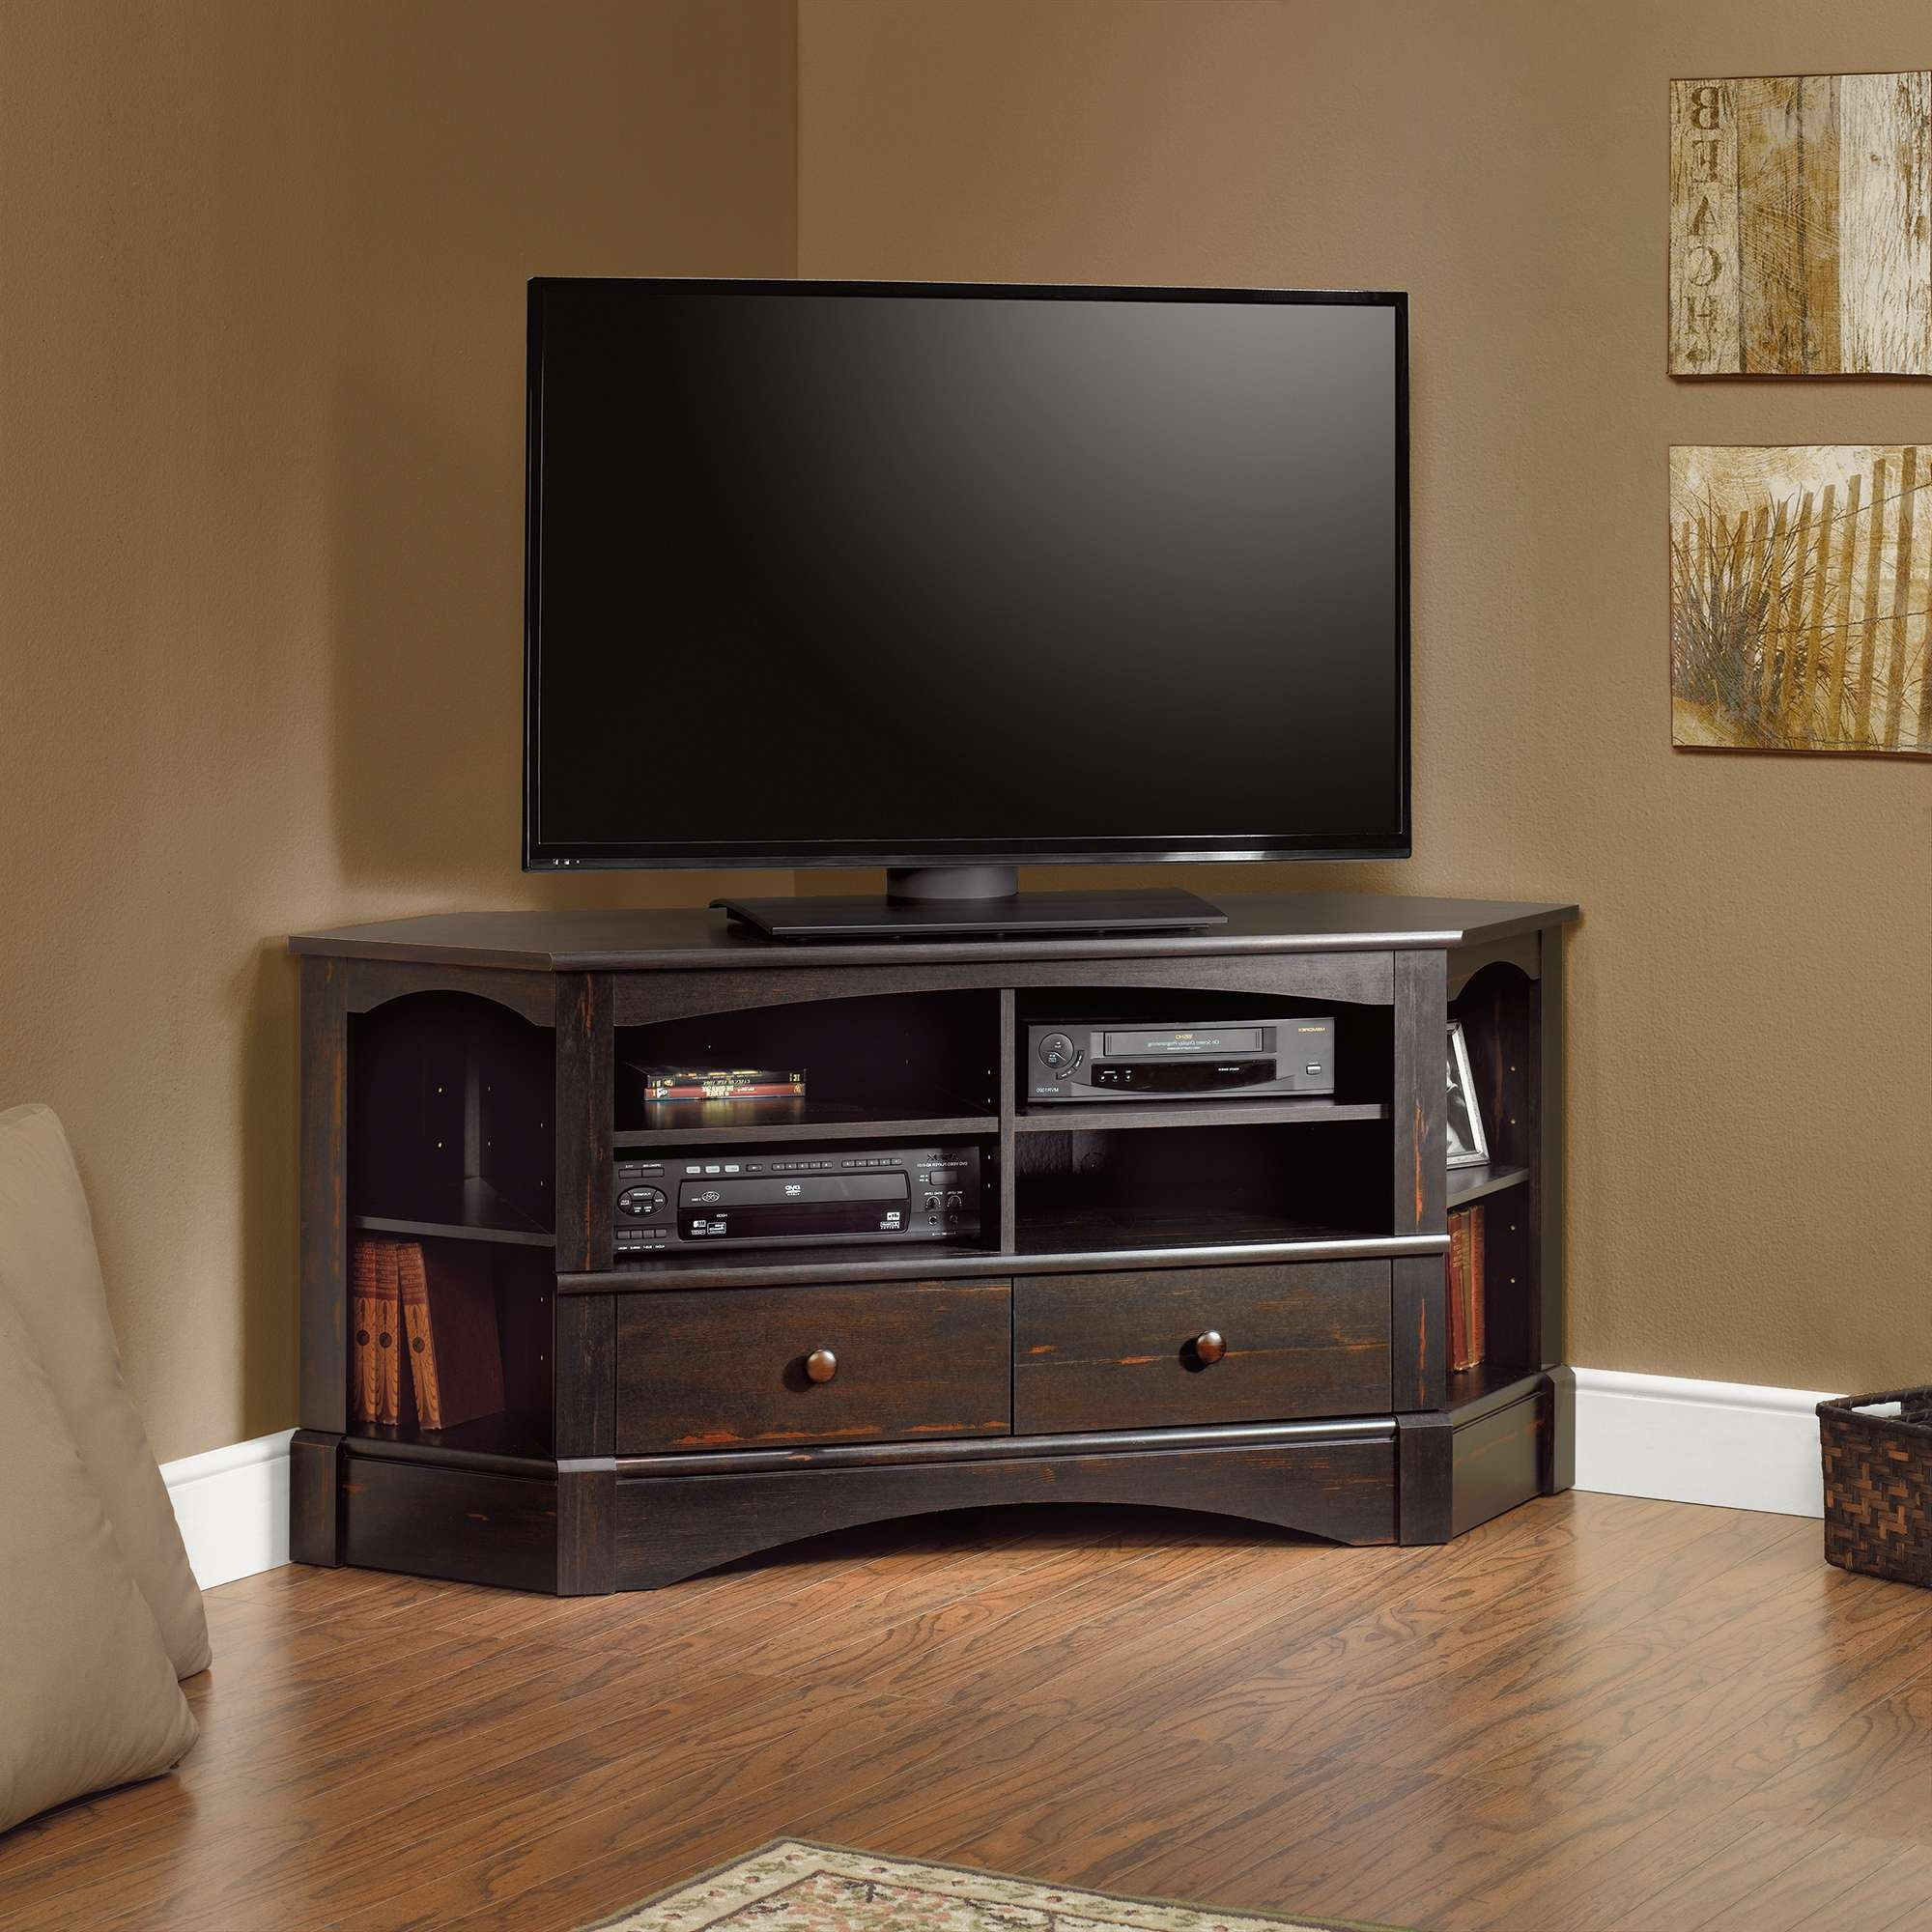 Tall Tv Stand For Bedroom Trends Ideas Corner Creative Cabinets With Regard To Tall Tv Cabinets Corner Unit (View 10 of 20)